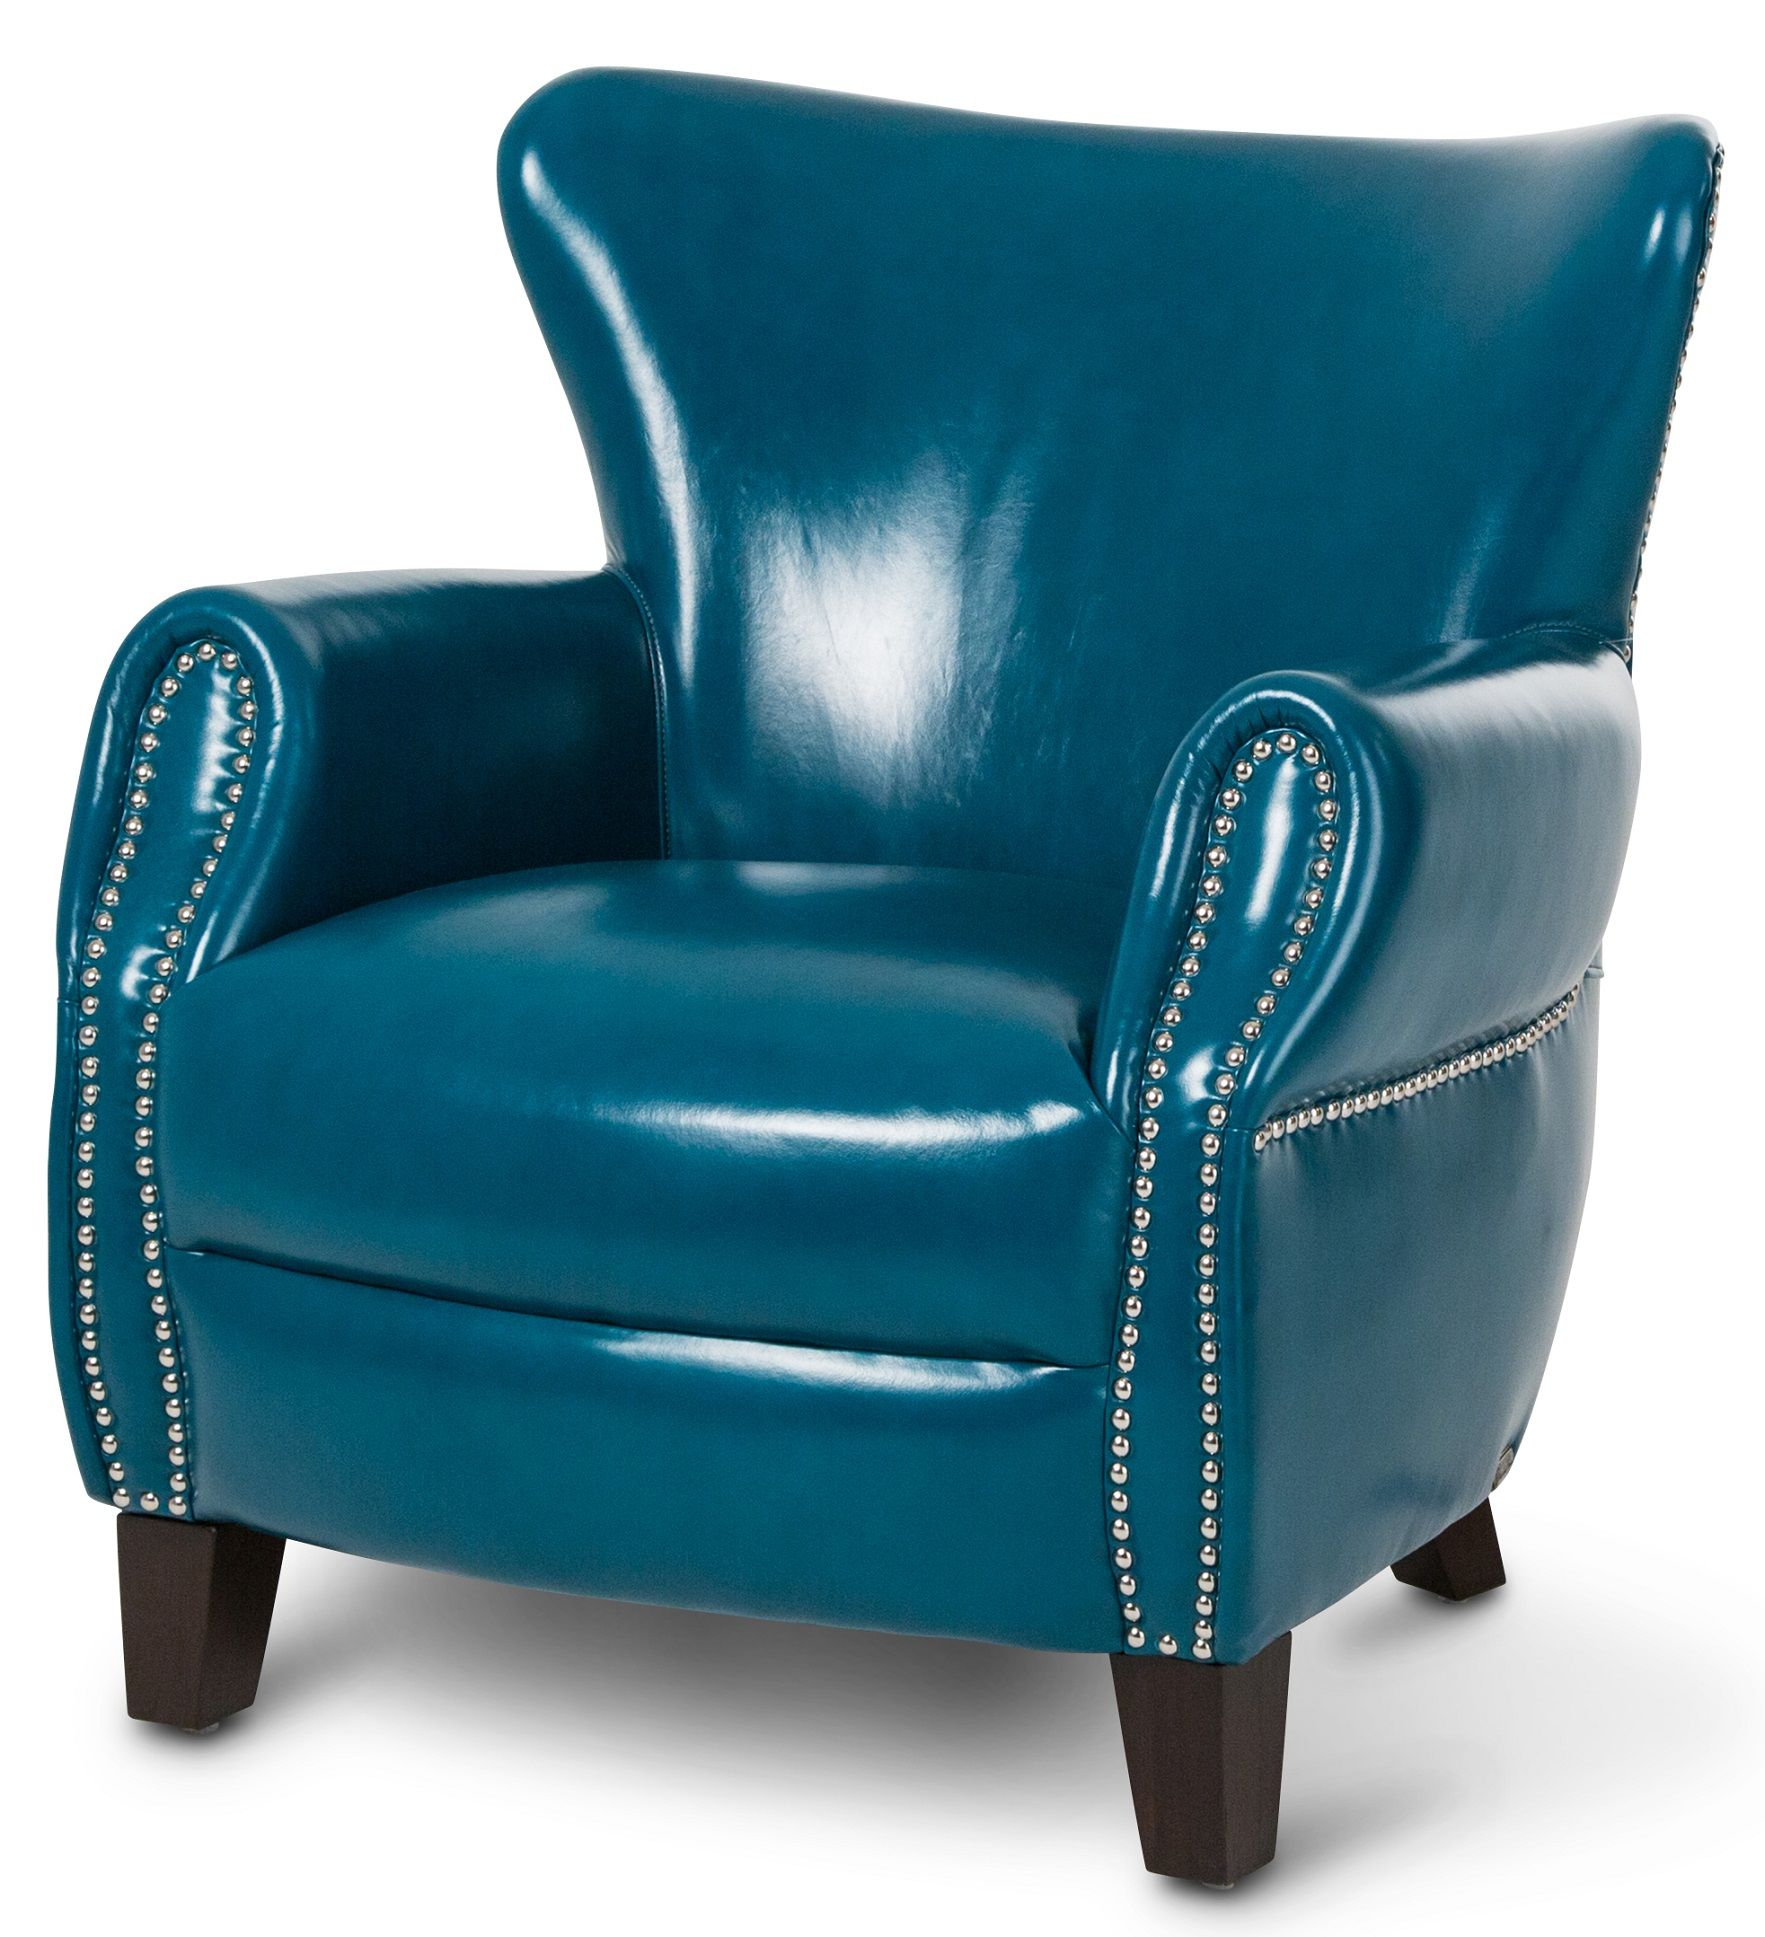 Awesome Blue Accent Chair 99 Intended For Inspiration Interior Home Design  Ideas With Blue Accent Chair